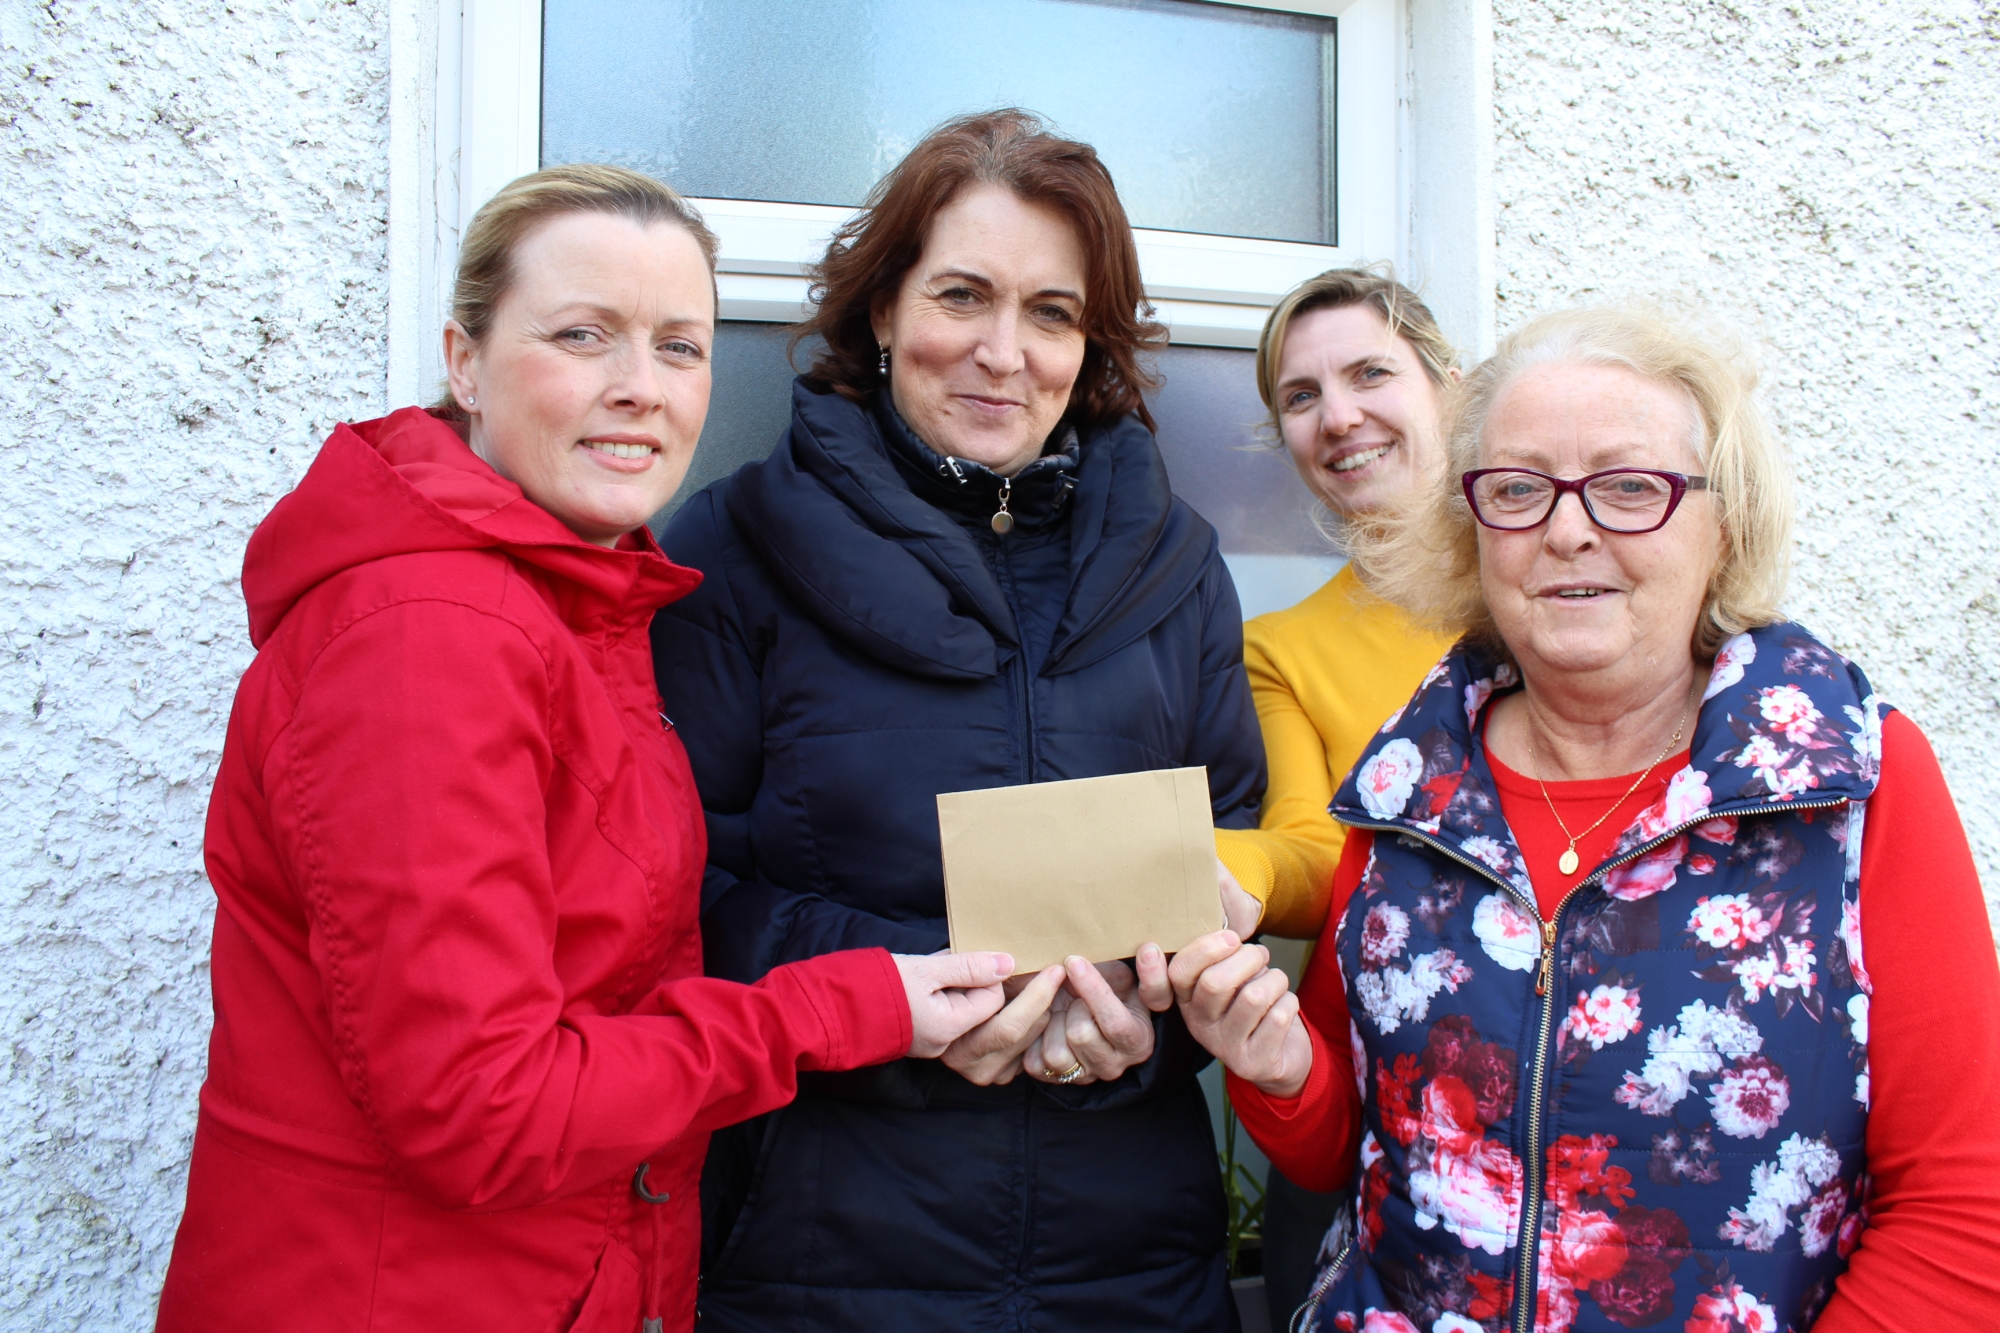 Janice and Mary Carthy present a cheque for €1000 for Naíscoil Kantara to Timahoe NS principal Ann Bergin and teacher Orla Mulhare.